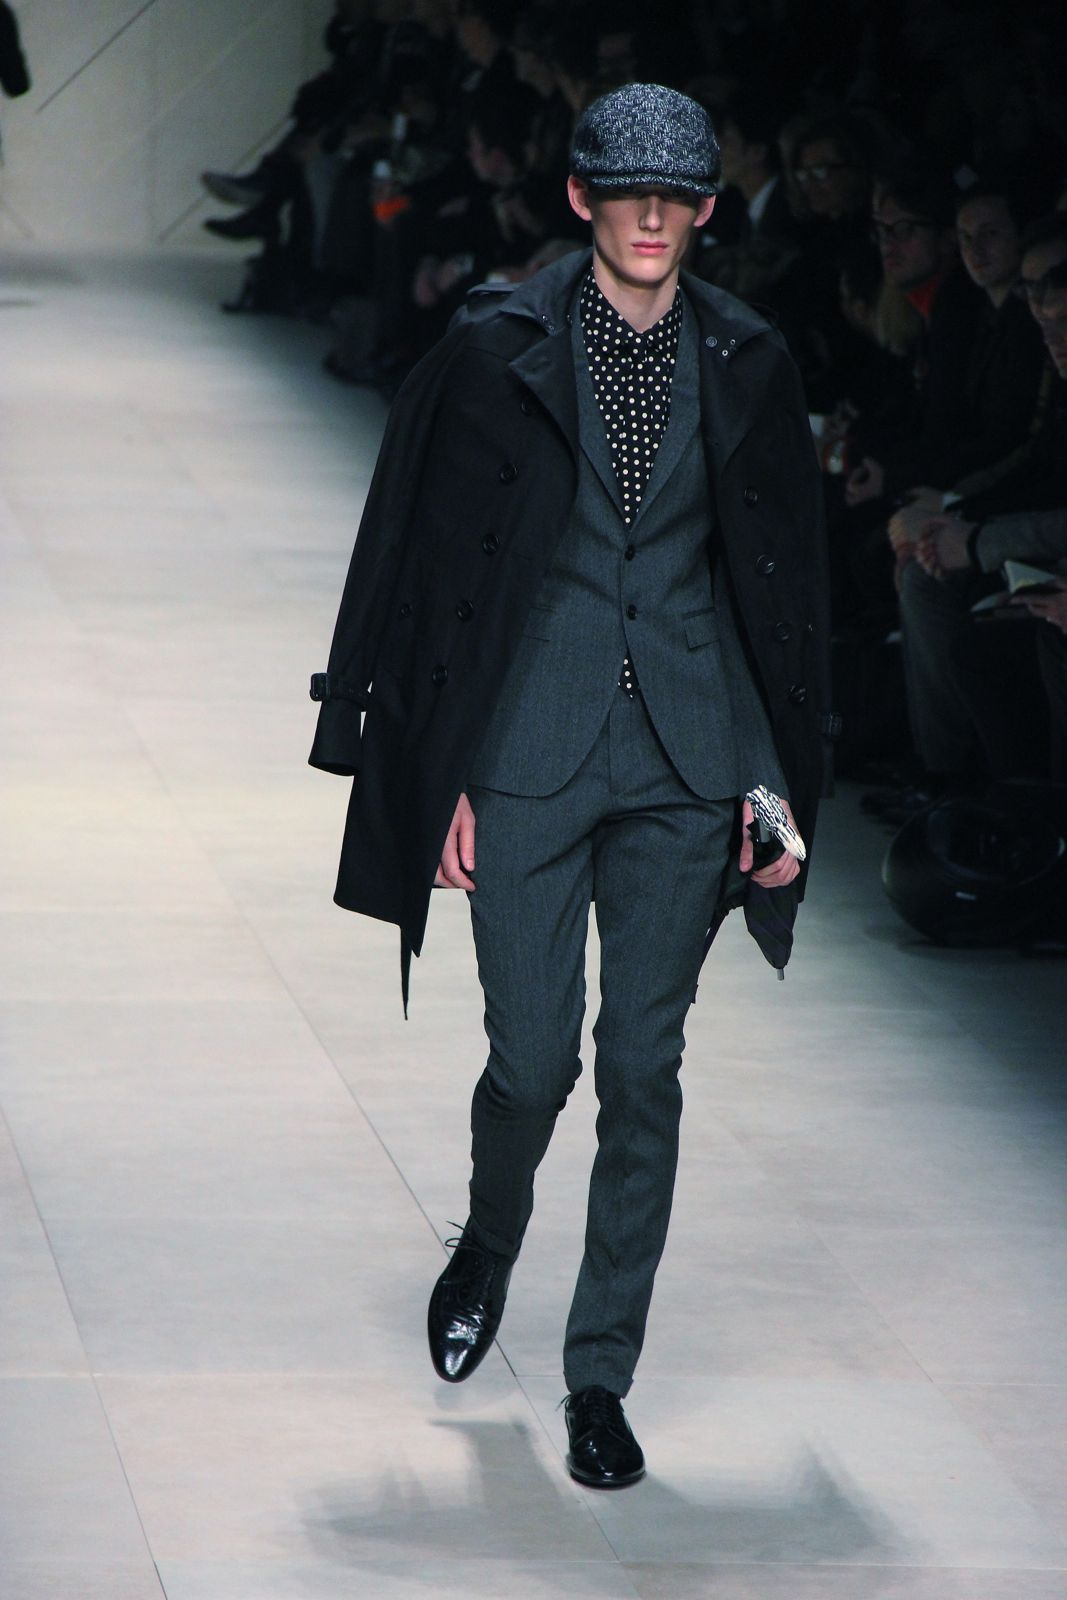 Burberry Prorsum Fall Winter 2012 Men's Collection Milano Fashion Week